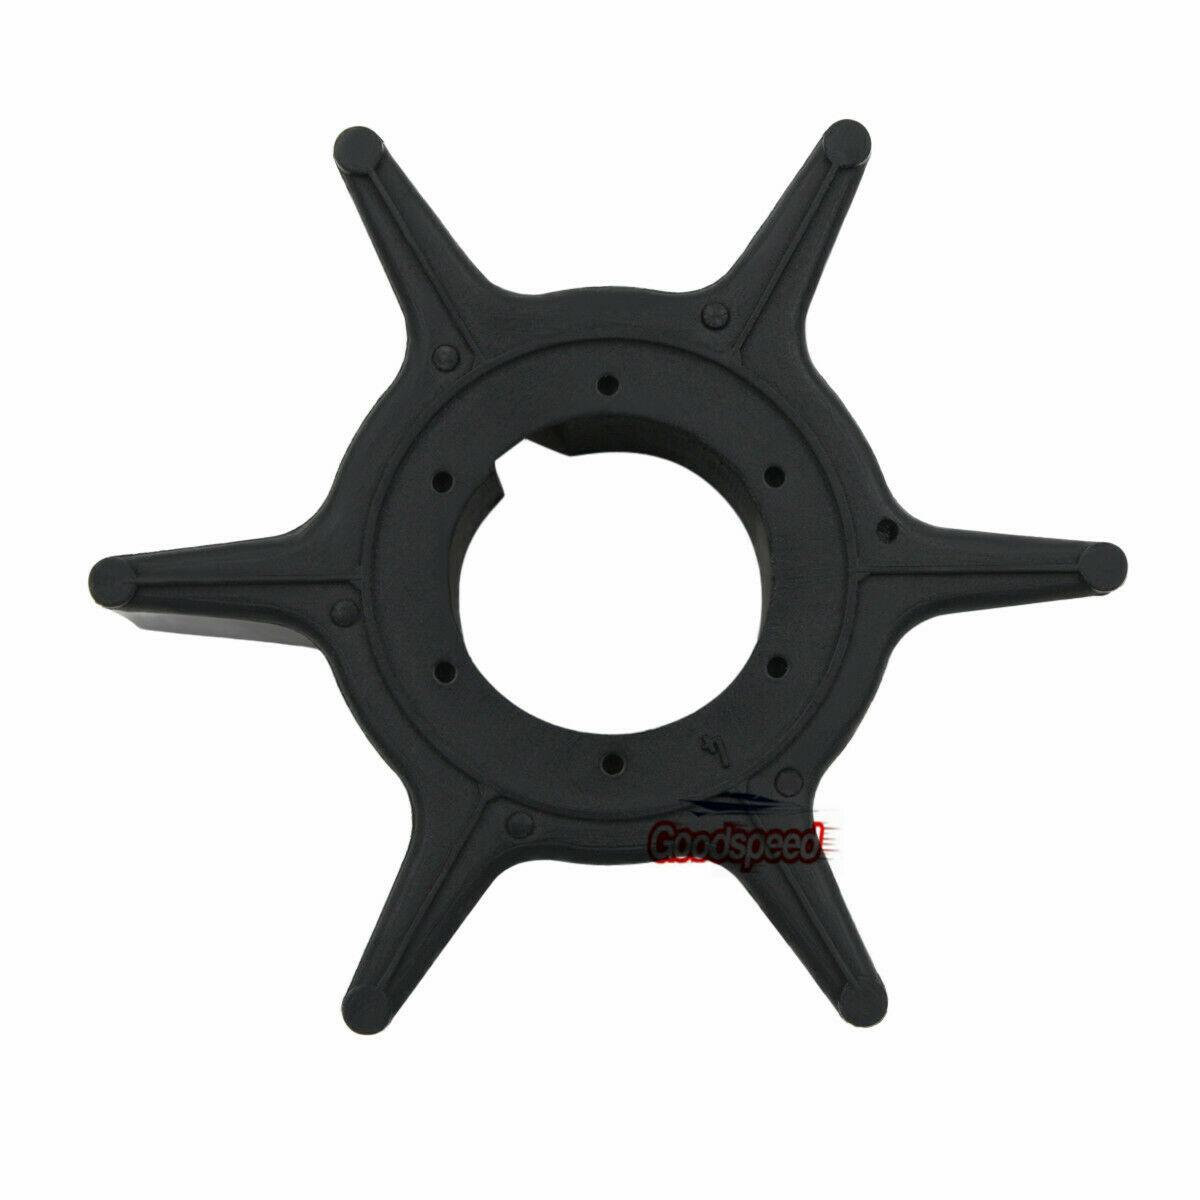 Boa Motor Impeller 19210-ZV5-003 18-3248 06192-ZV5-003//06192-ZV5-000 for honda 4-Stroke 35hp 40hp 45hp 50hp 60hp Outboard Engine water pump parts